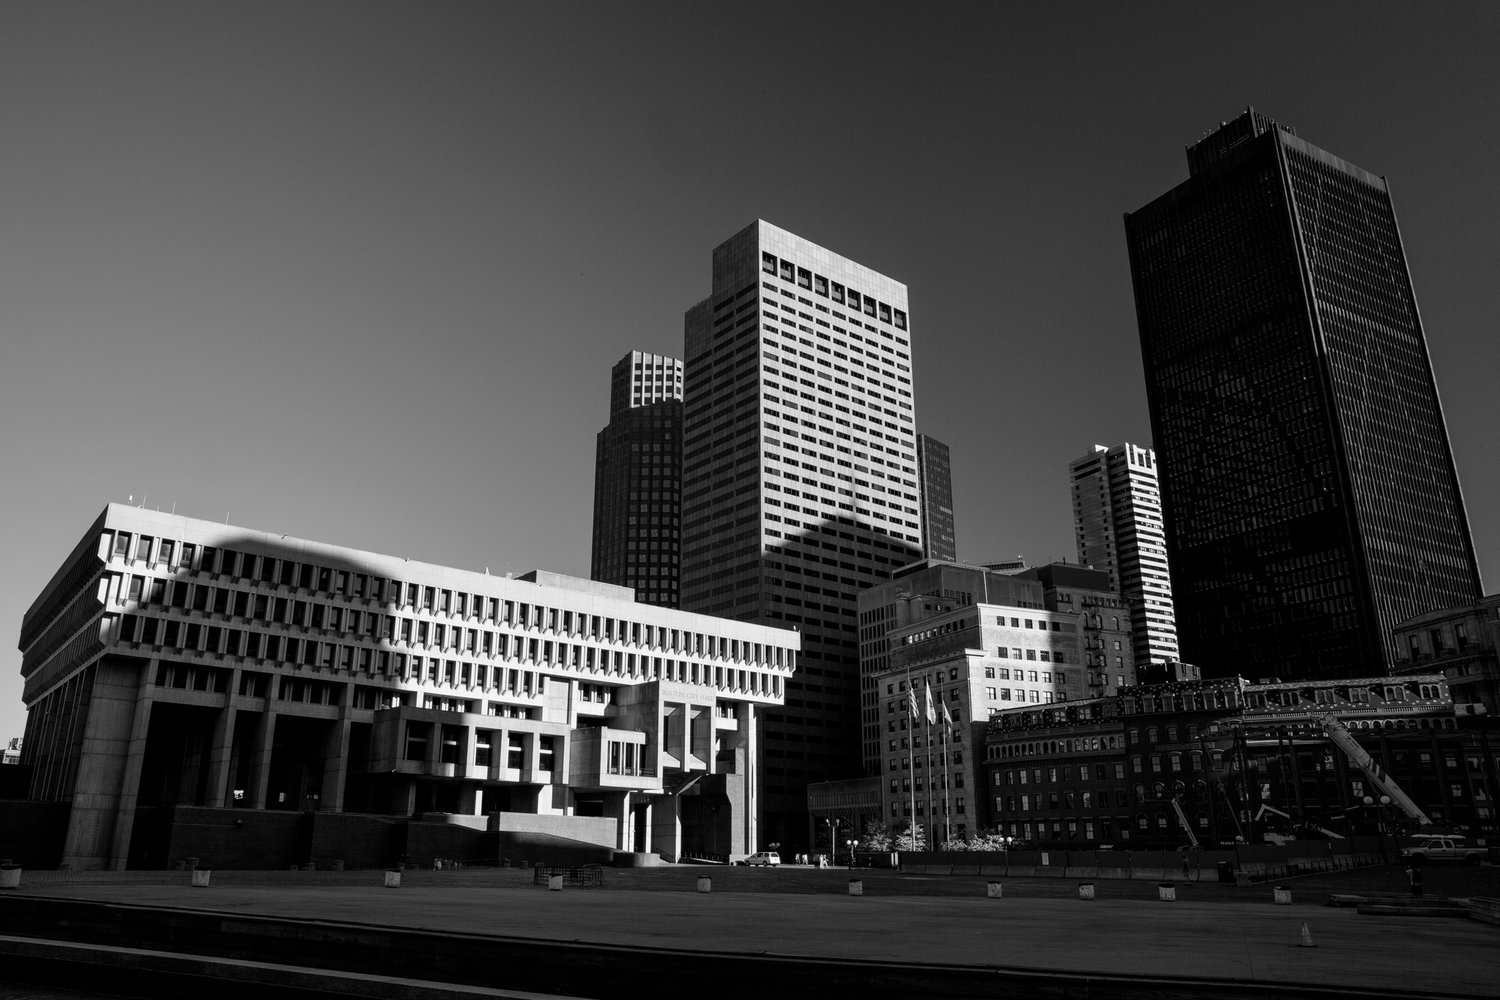 us_ma_bos-0867-9_city-hall-plaza.jpg